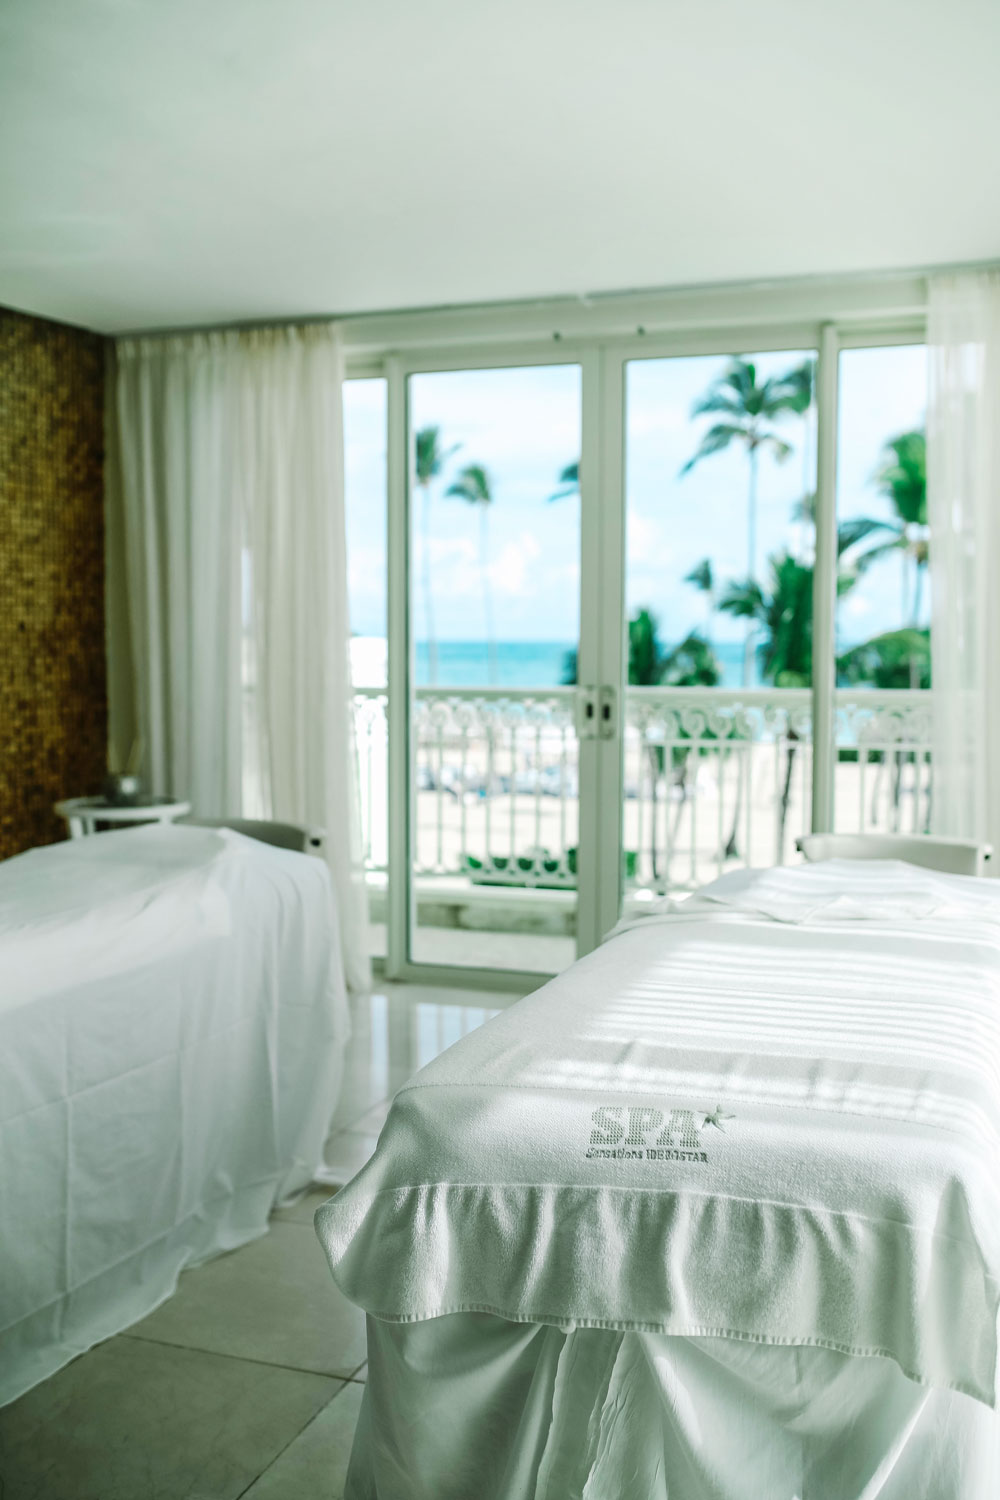 Iberostar Grand Hotel Bavaro review by To Vogue or Bust